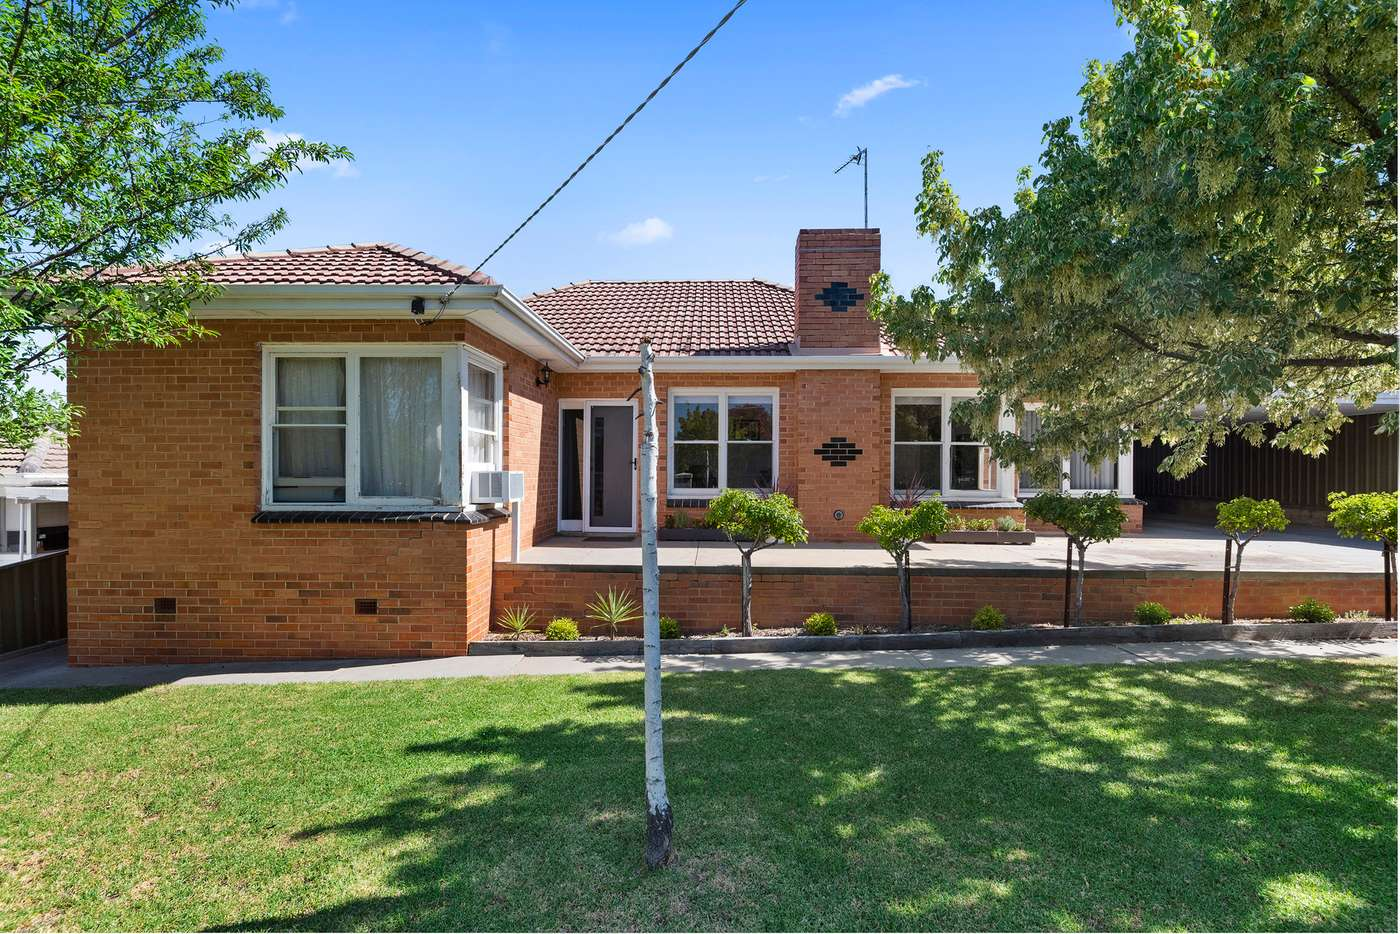 Main view of Homely house listing, 2 Marroo Street, White Hills VIC 3550